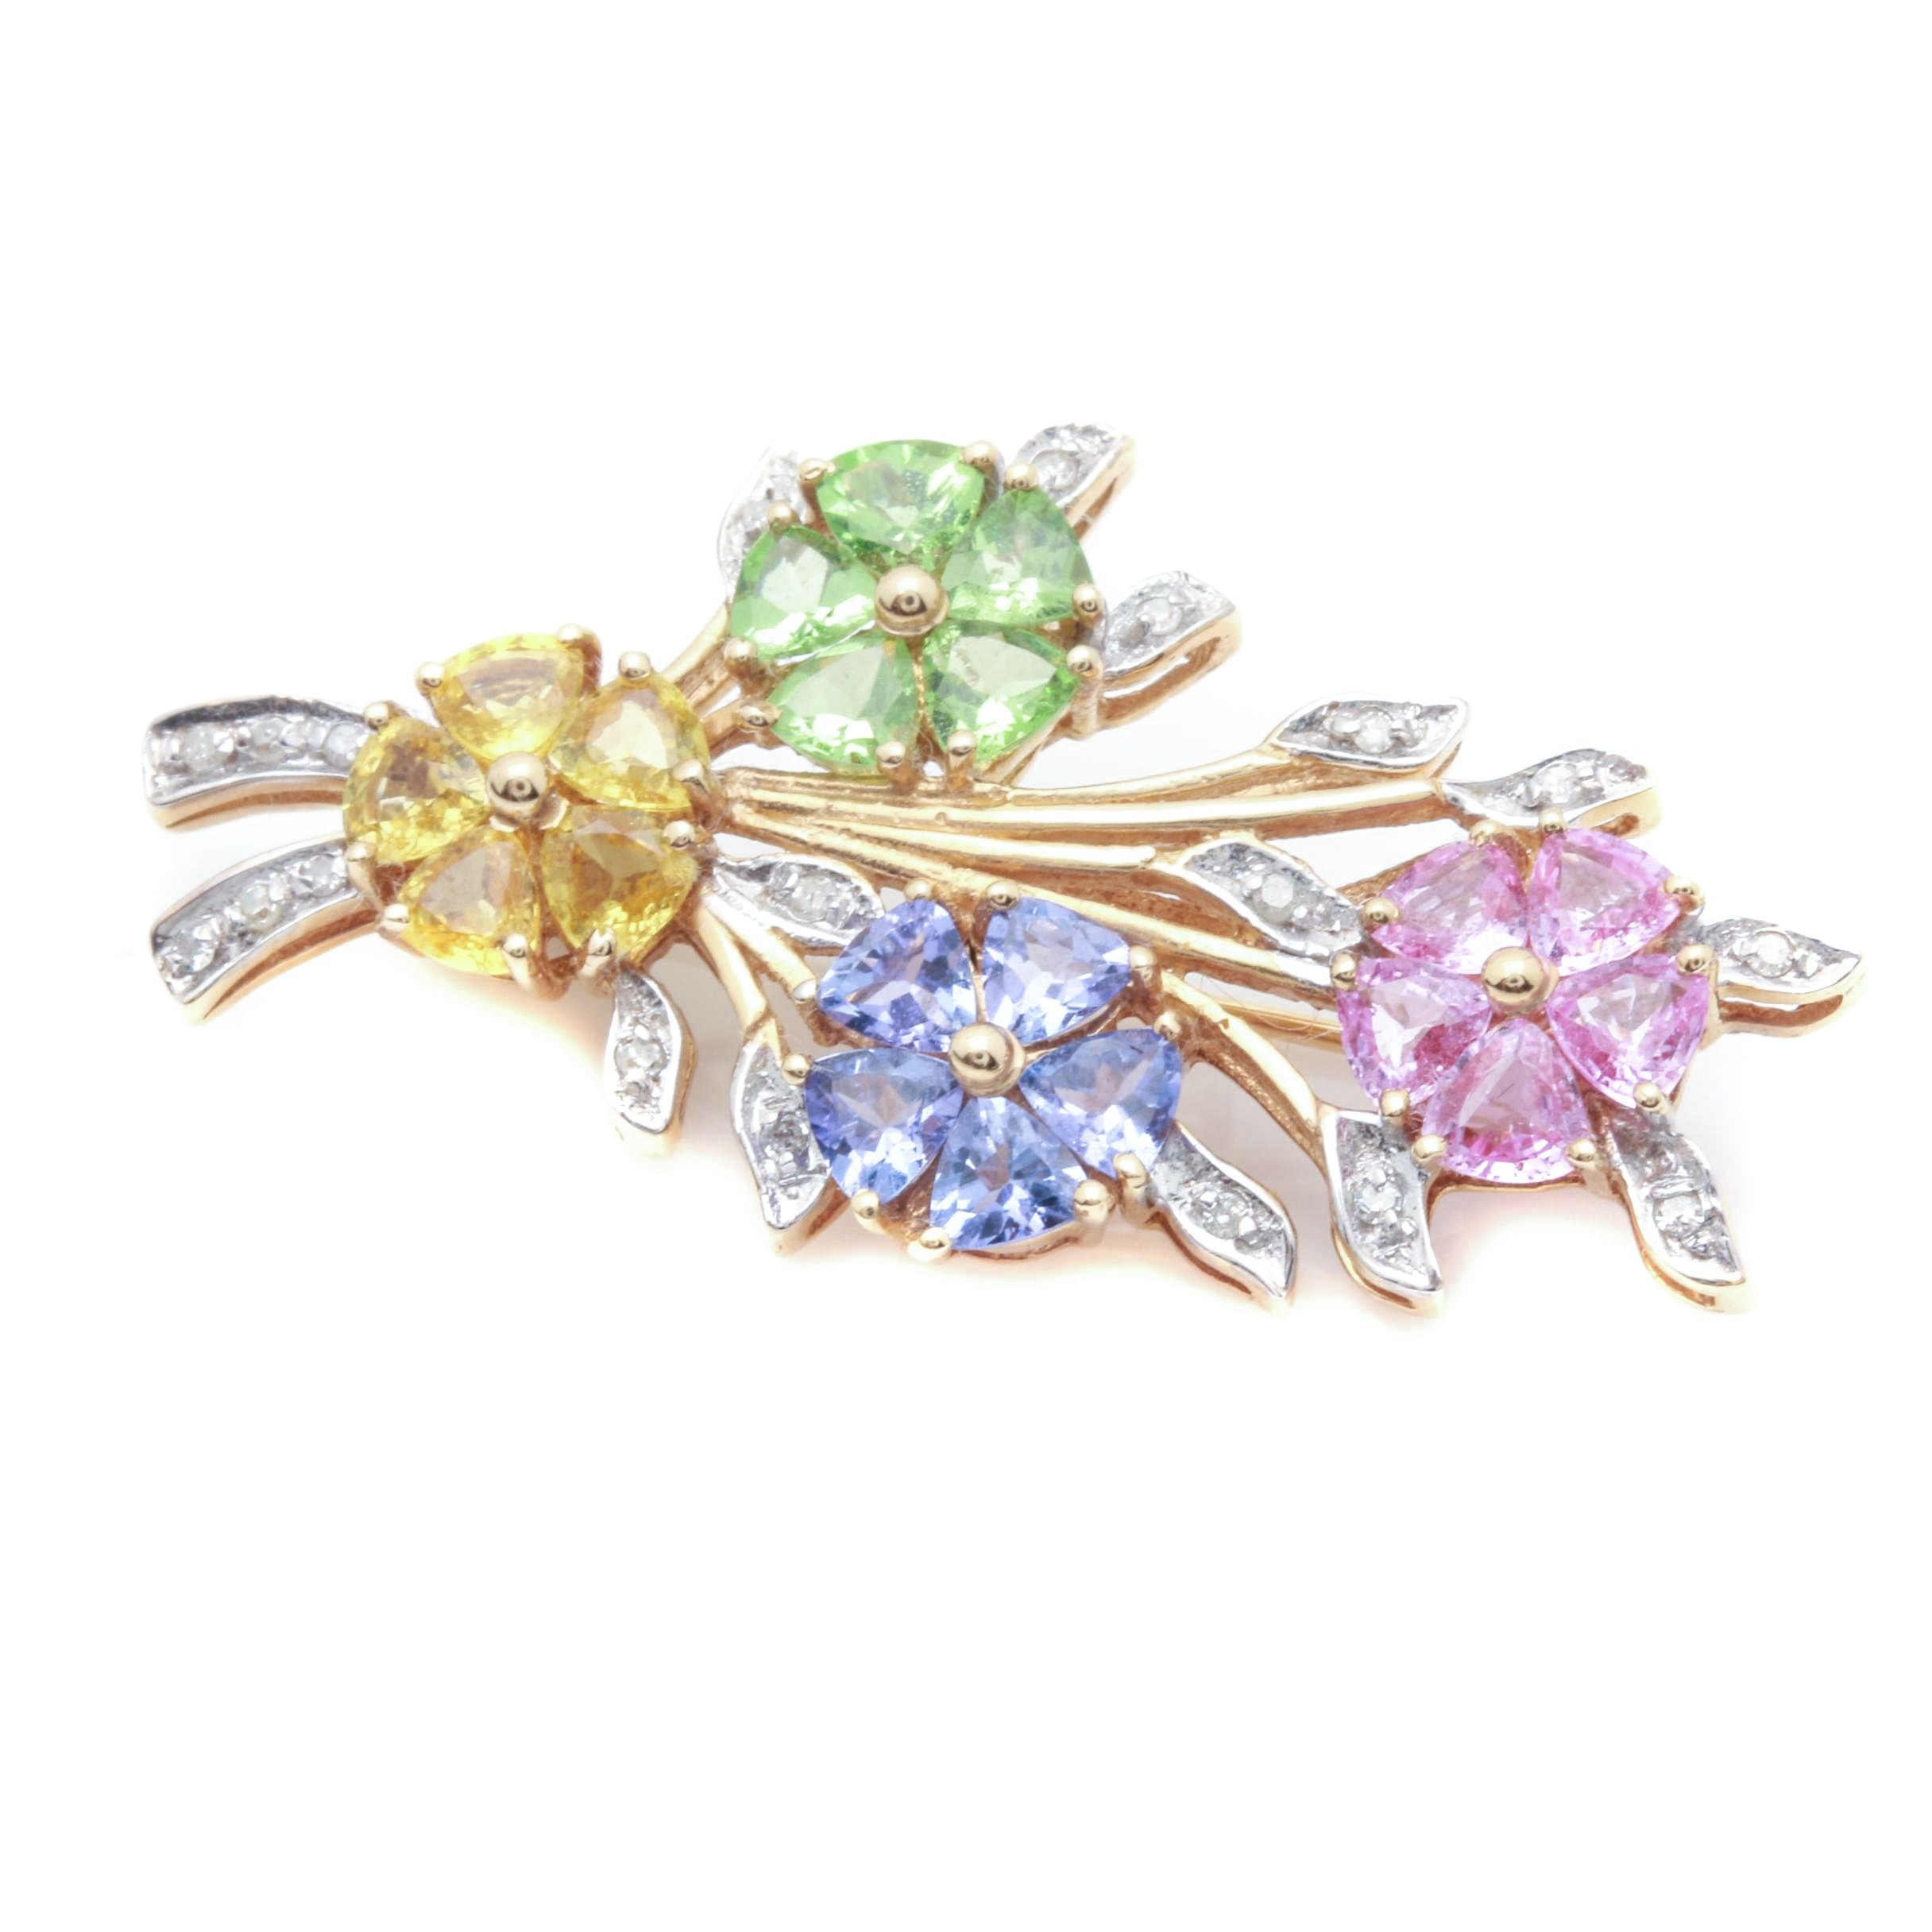 14K Yellow Gold Diamond and Multicolored Gemstone Floral Bouquet Brooch